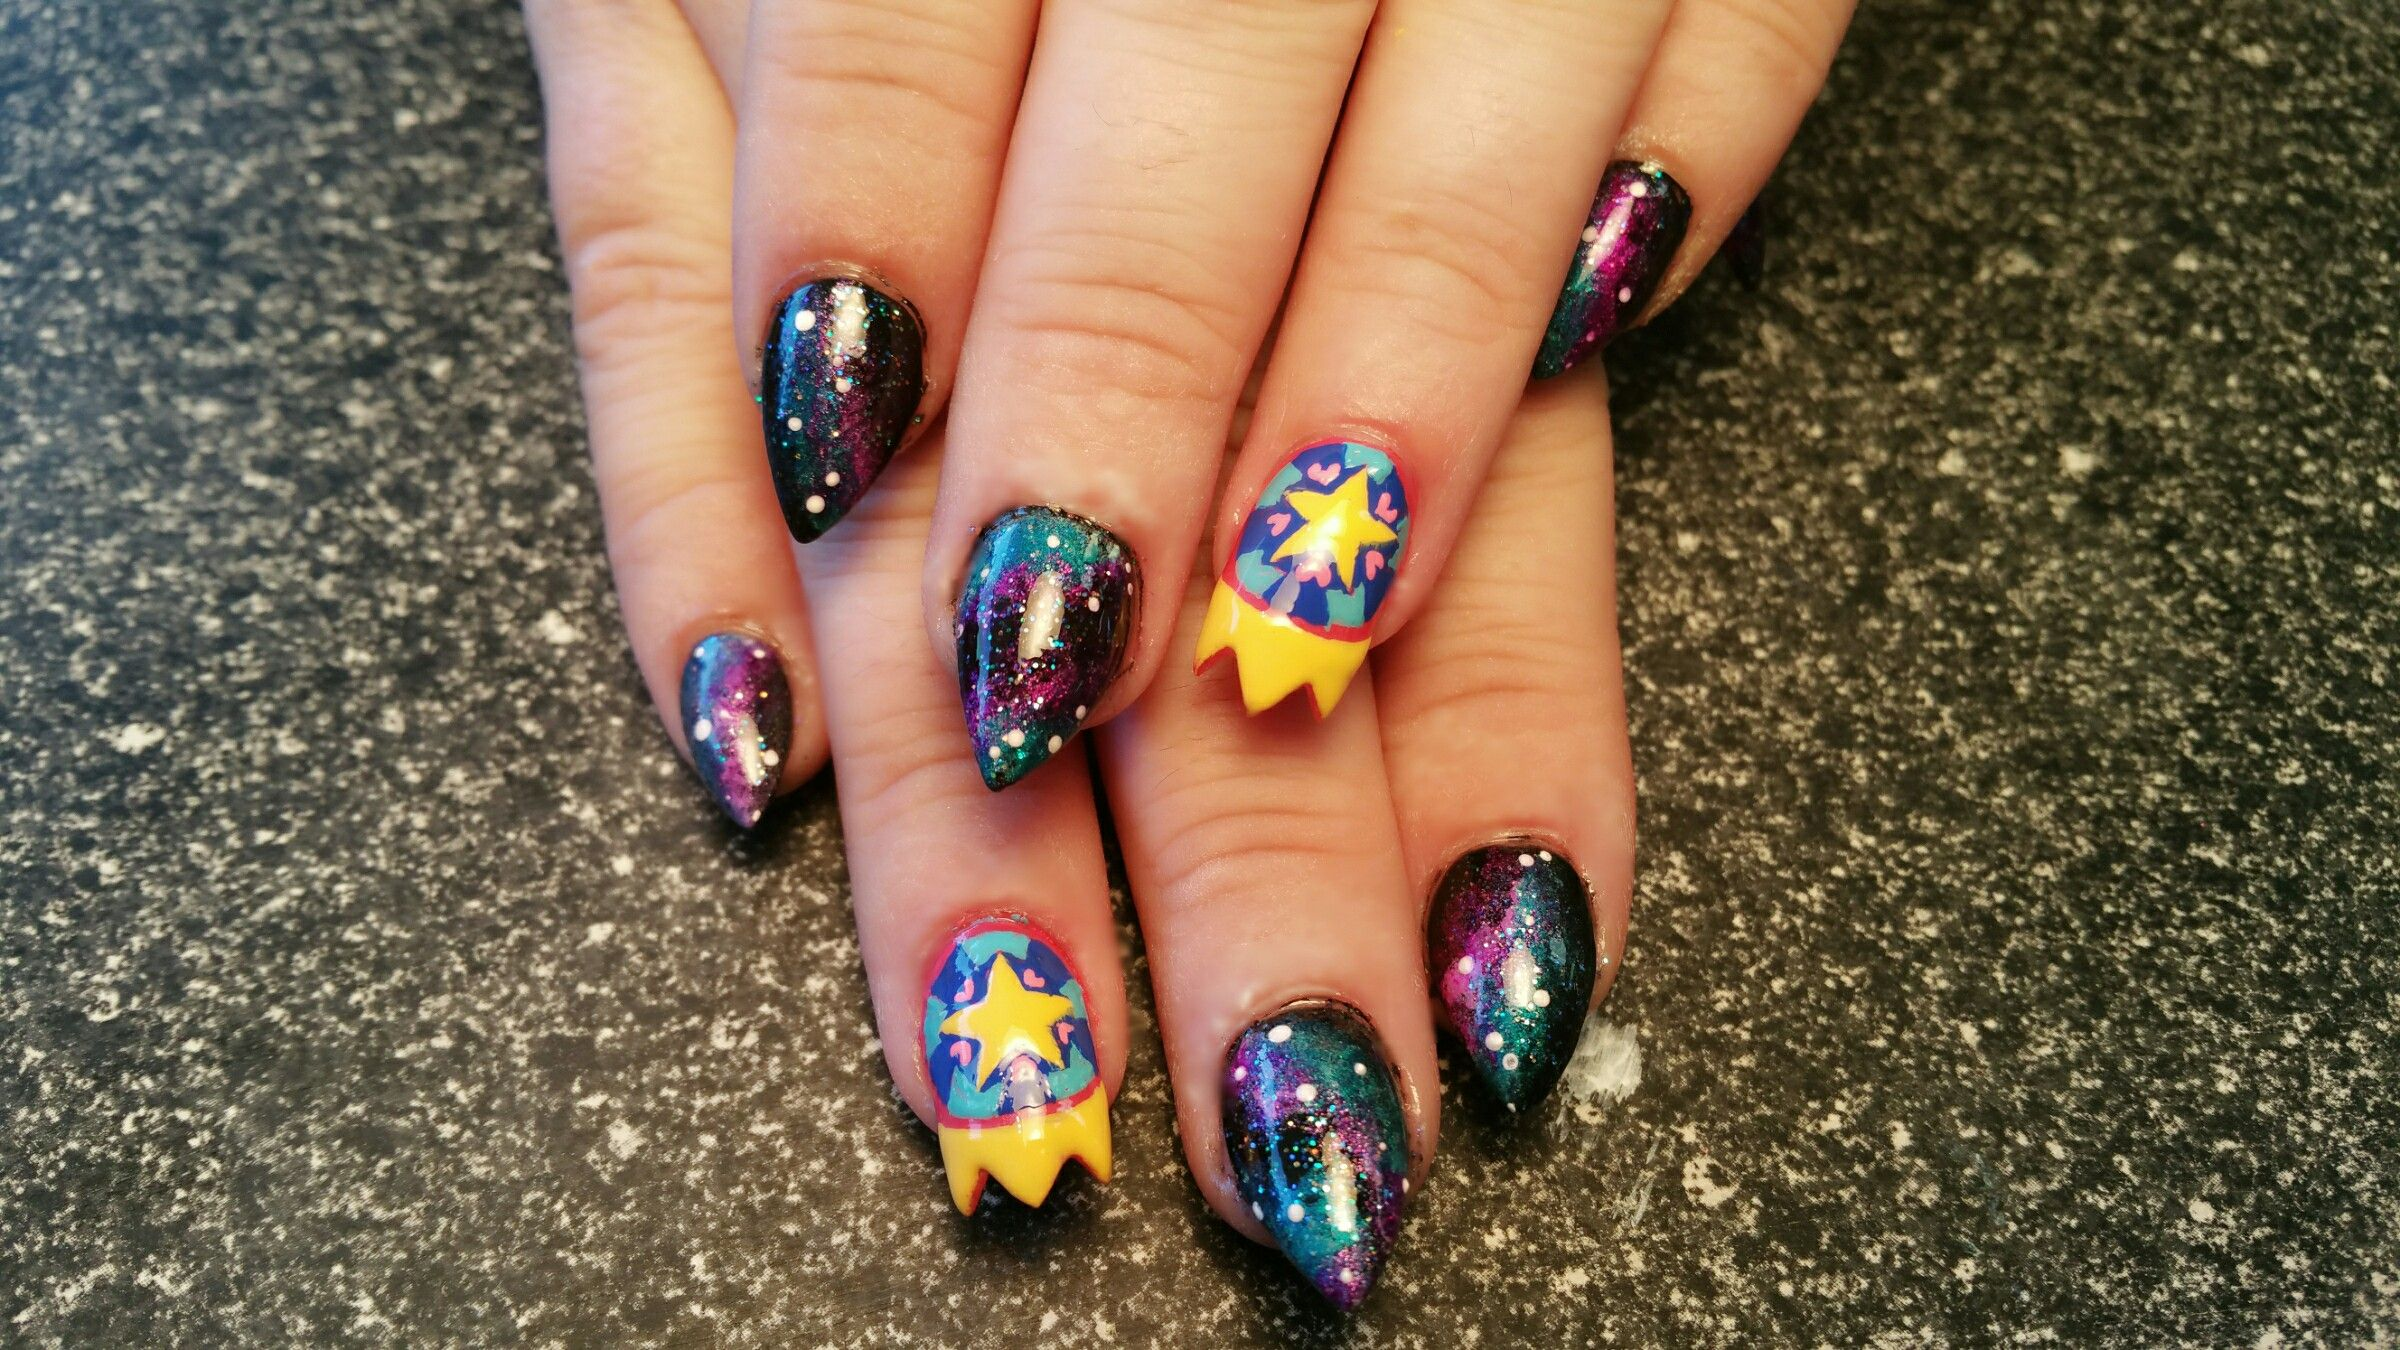 Star vs the forces of evil inspired nails. Galaxy nails with ...